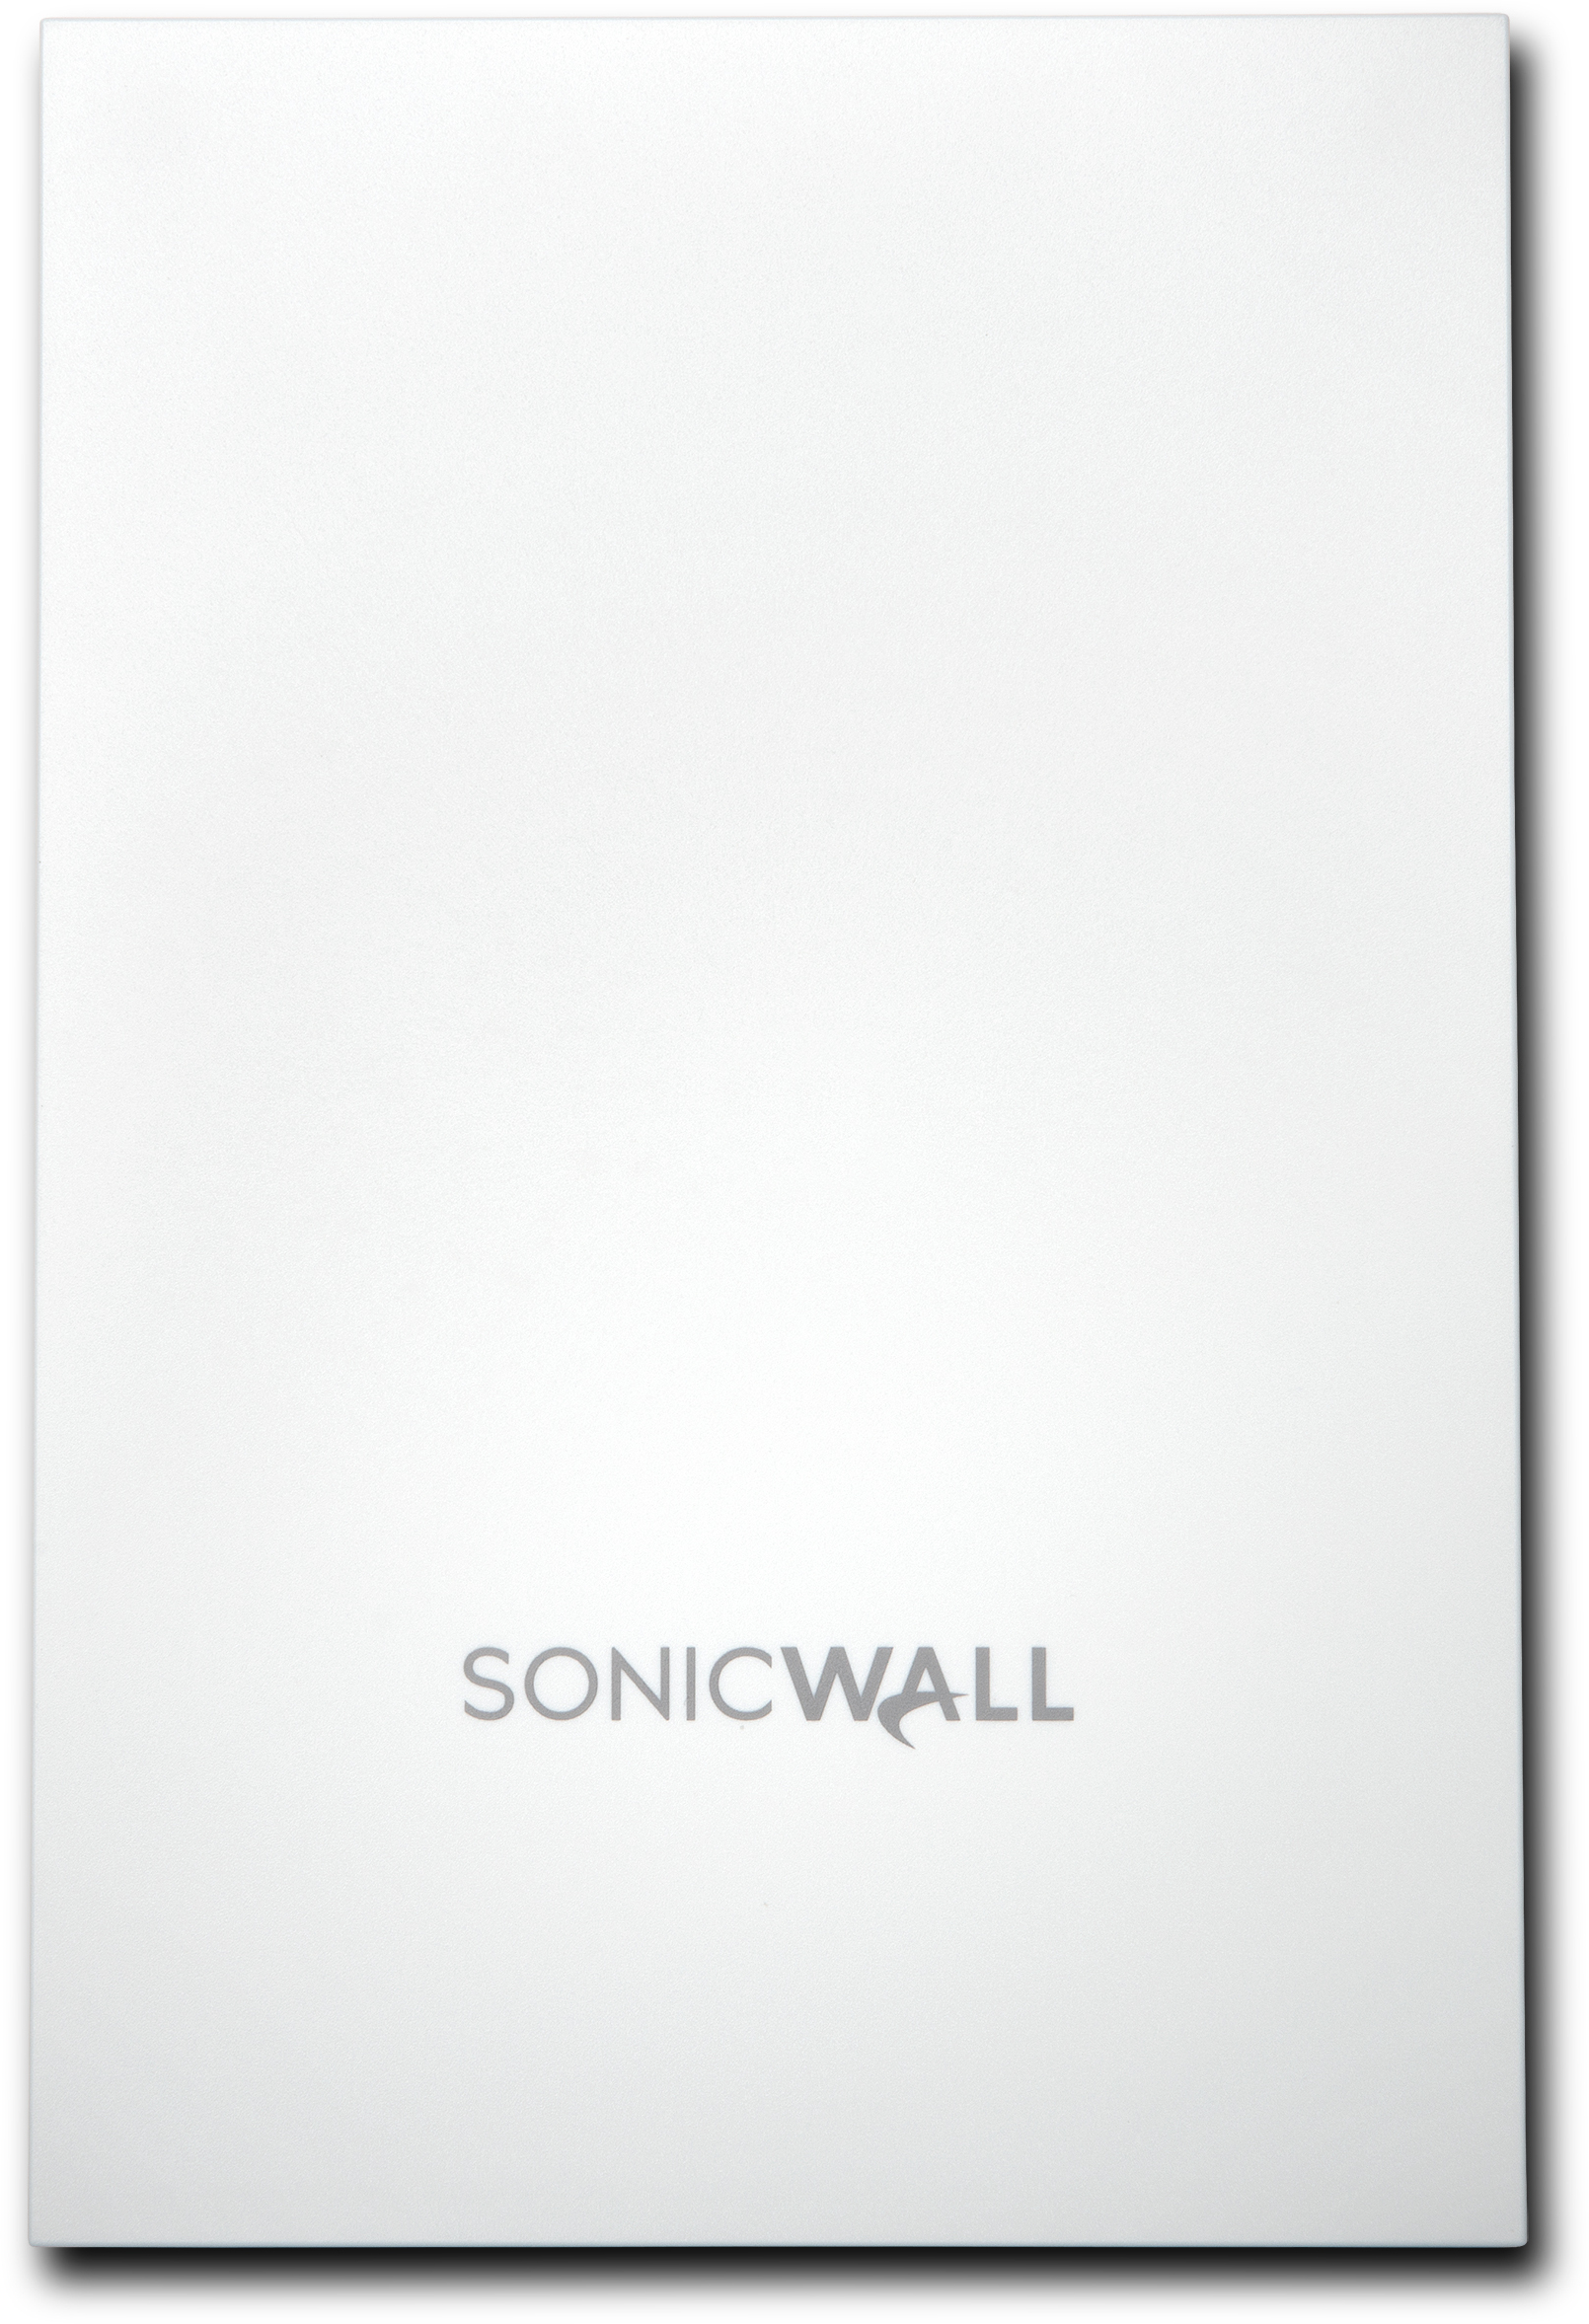 SonicWALL SonicWave 224w Top